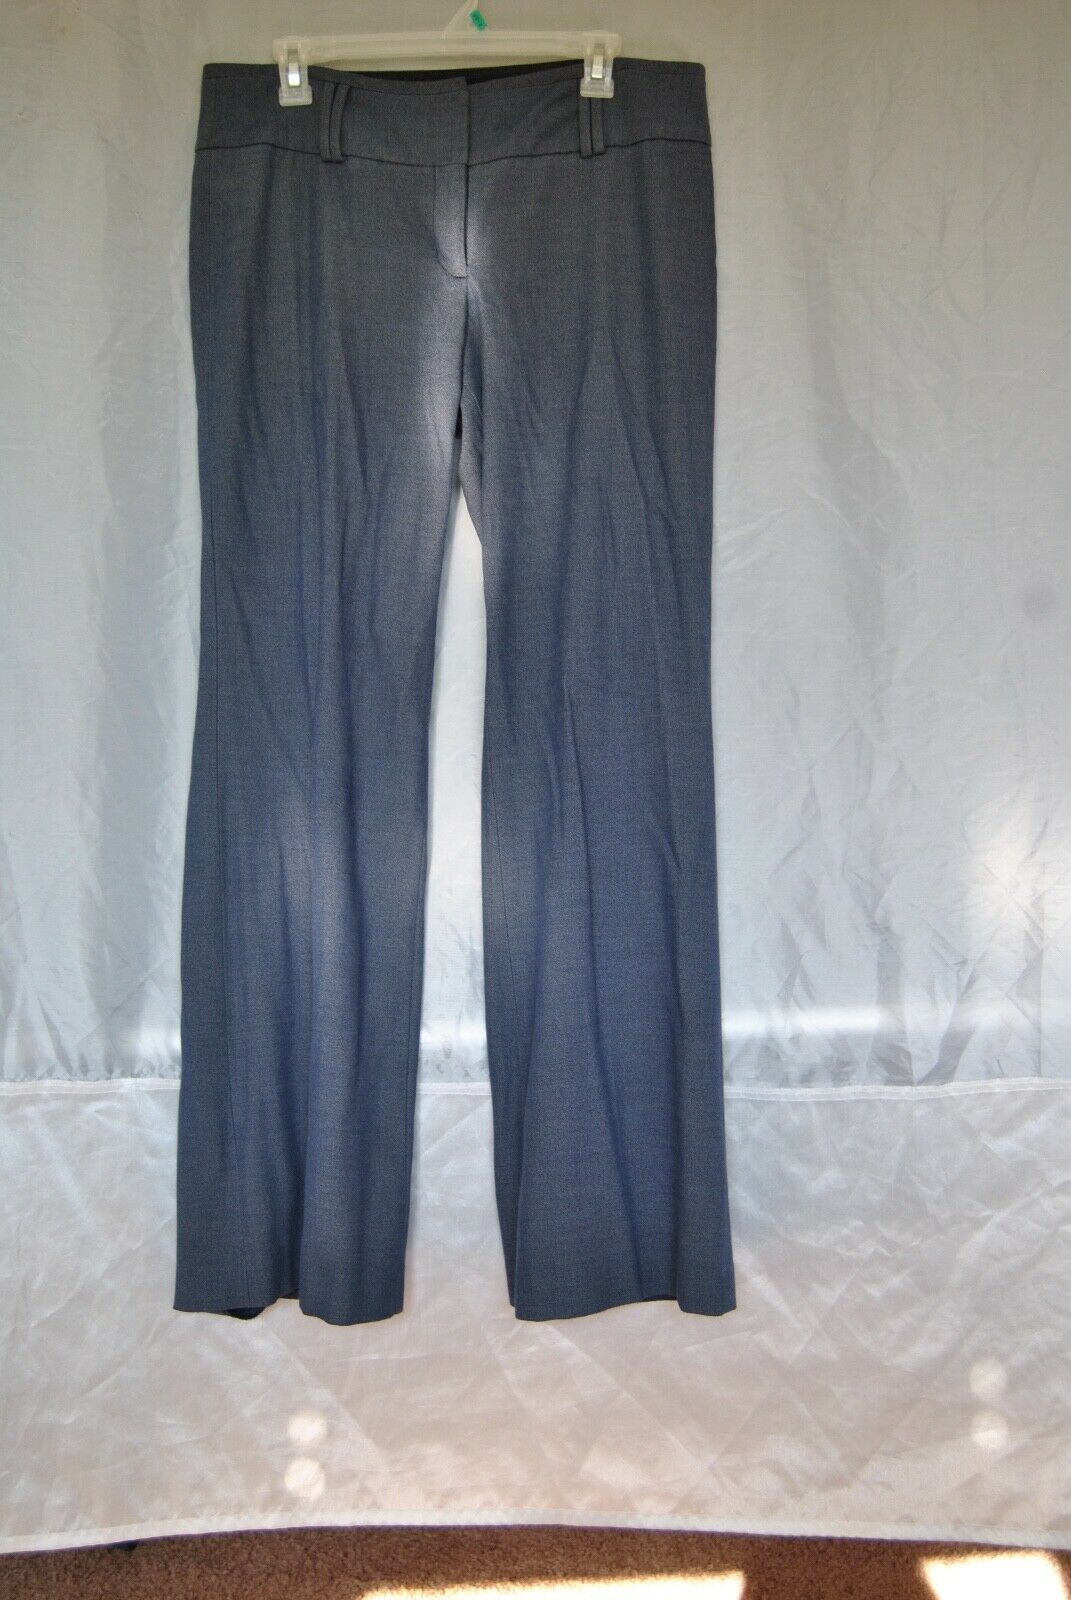 Women's Pants by Express Editor for tall woman 10R Low rise Flare